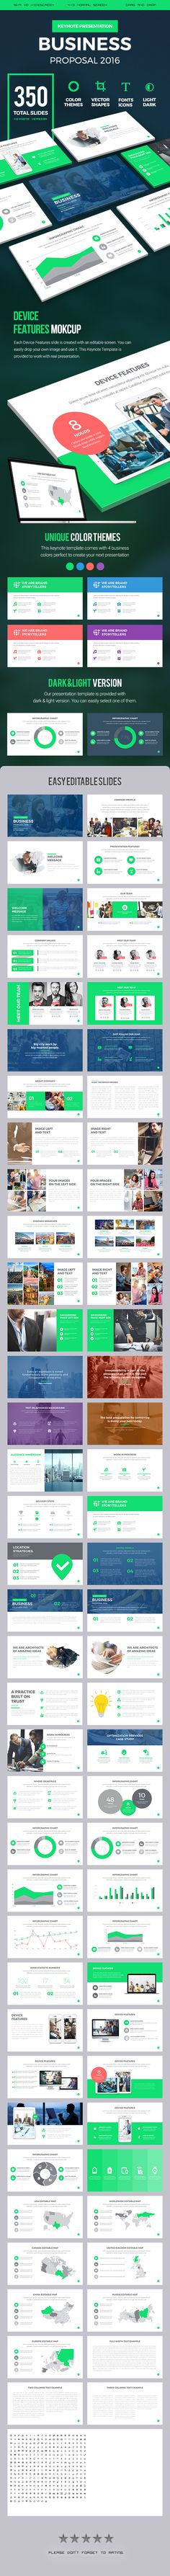 Business Proposal 2016 Keynote Presentation Template - Keynote Templates Presentation Templates